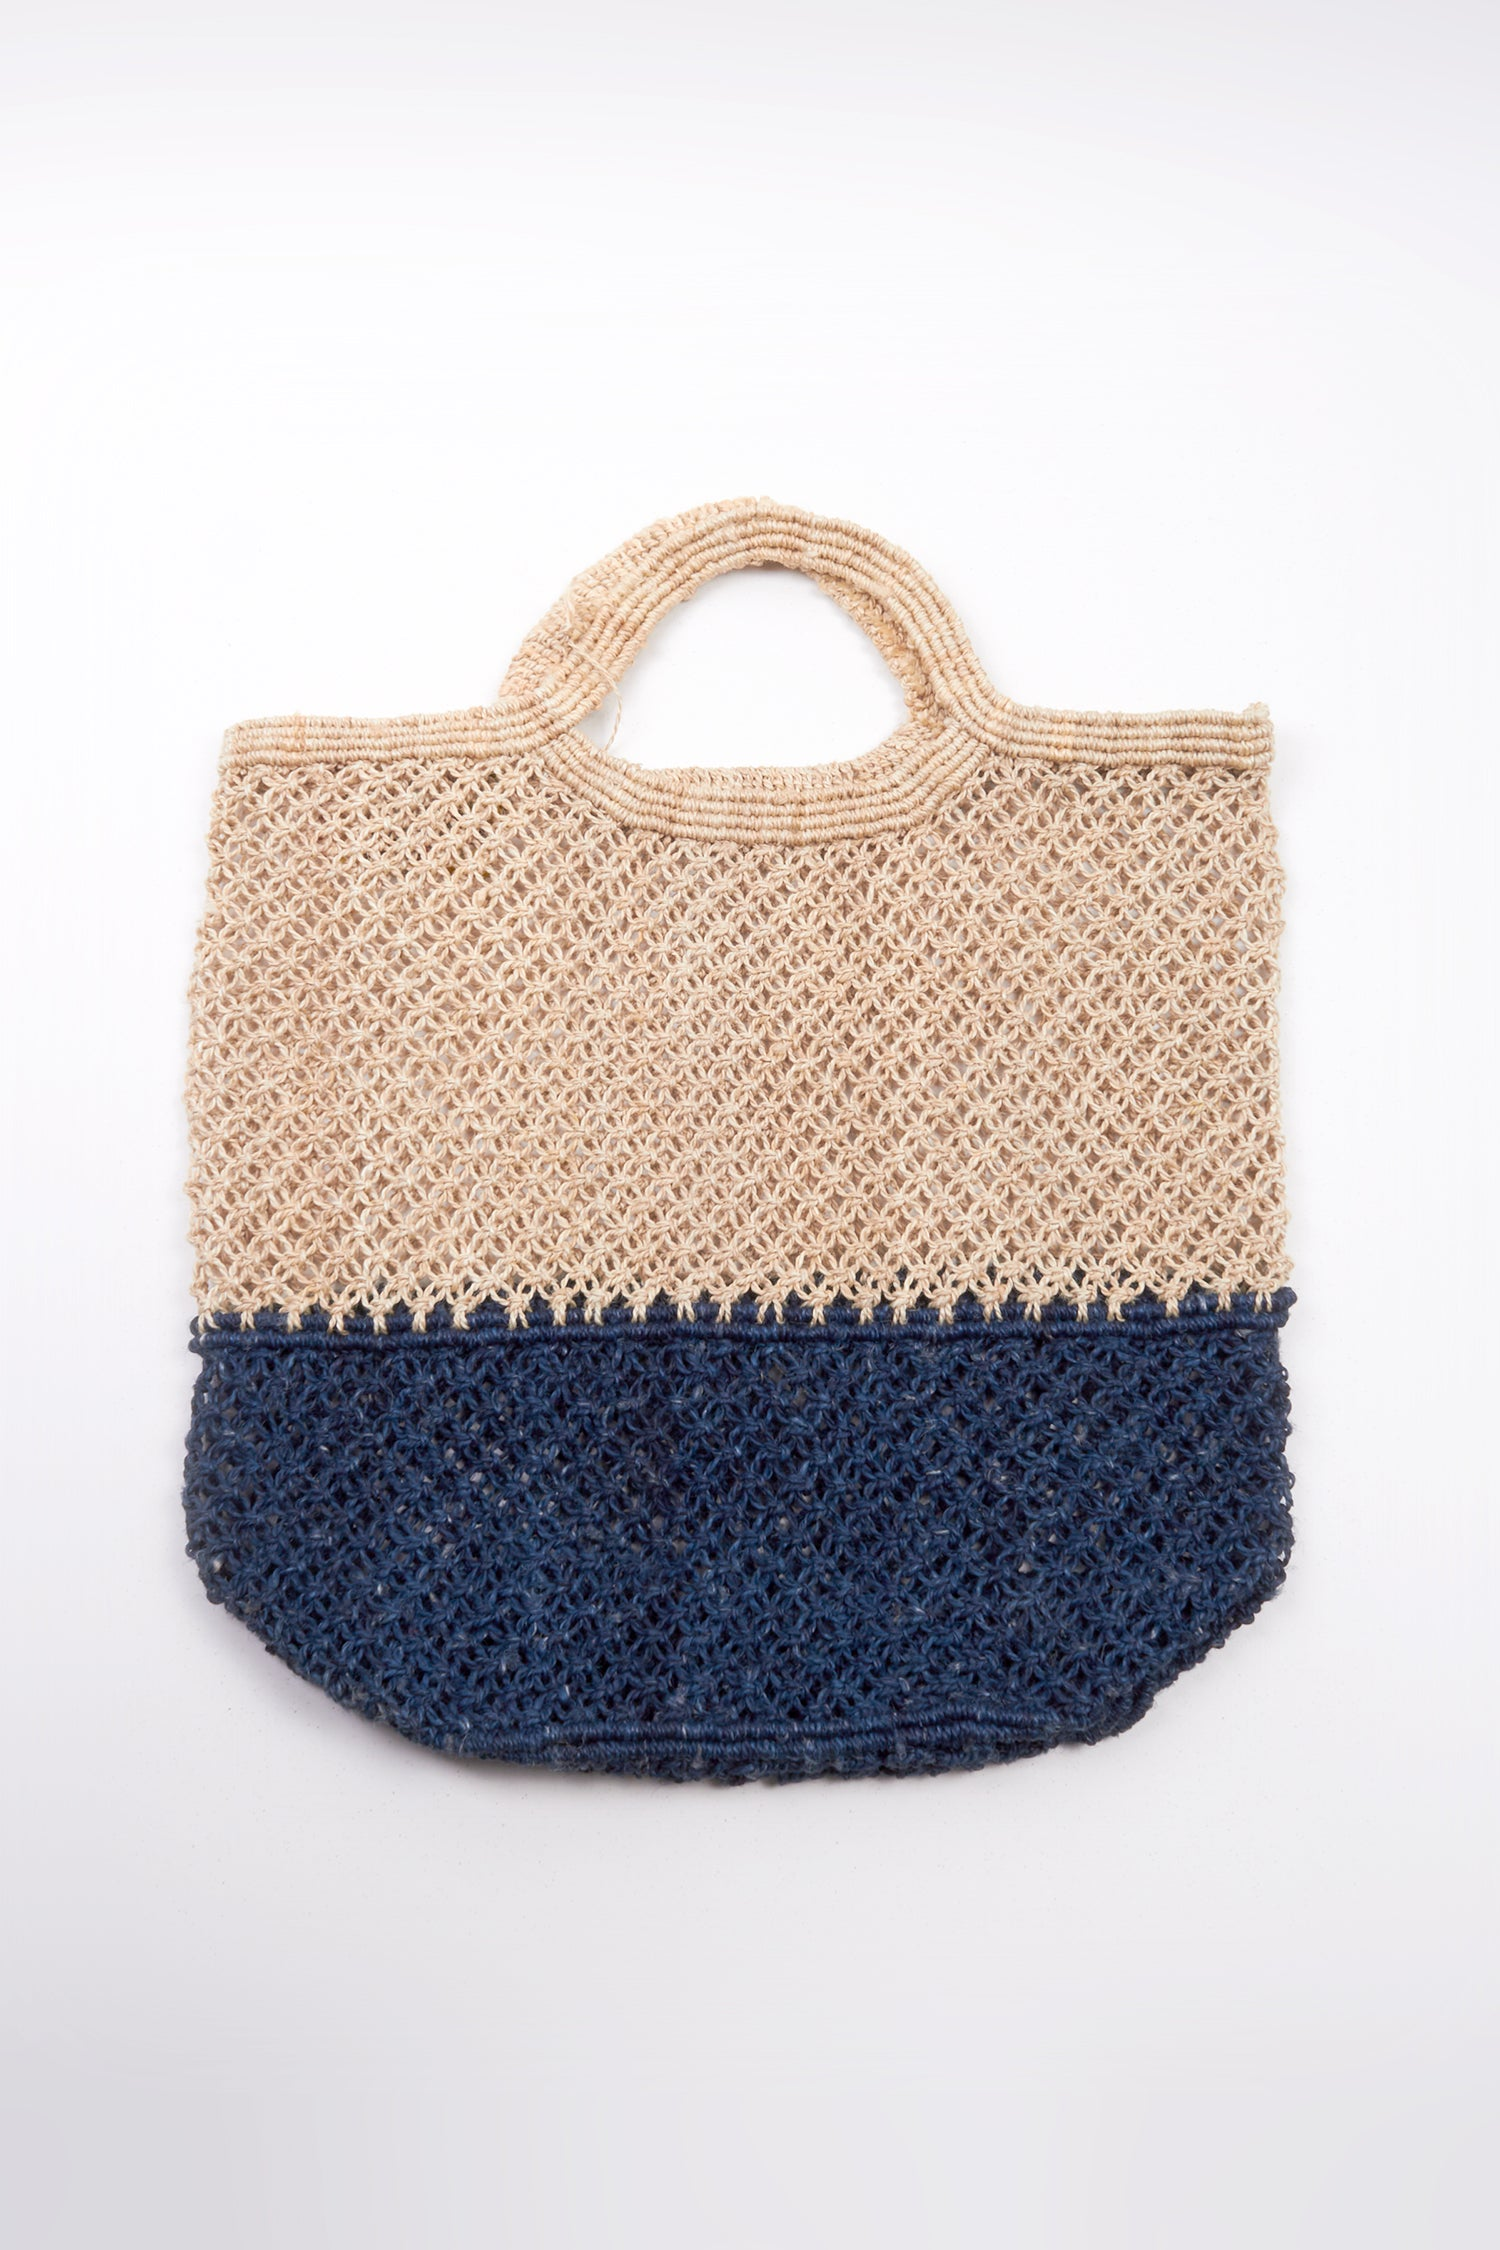 JUTE MACRAME SHOPPING BAG - NATURAL/ INDIGO